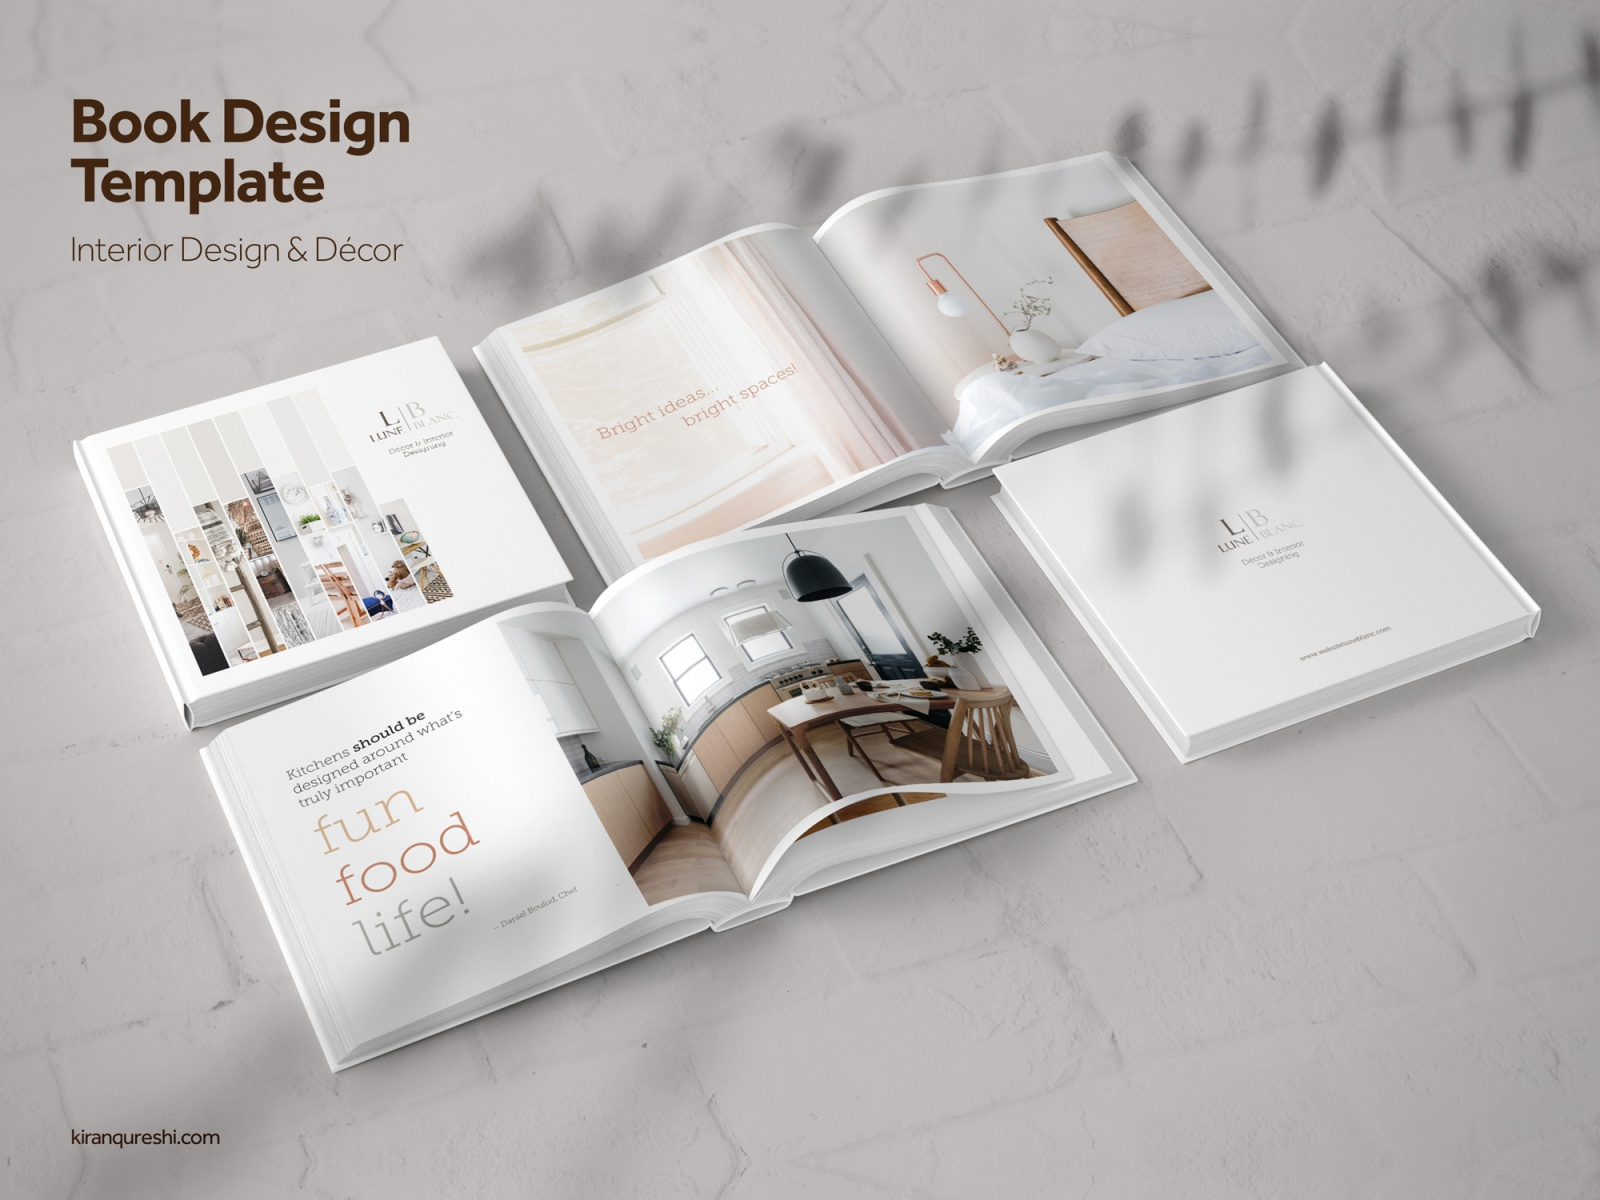 Coffee Table Book Interior Design Decor By Kiran Qureshi On Dribbble,Front Yard Garden Design Ideas With Pebbles